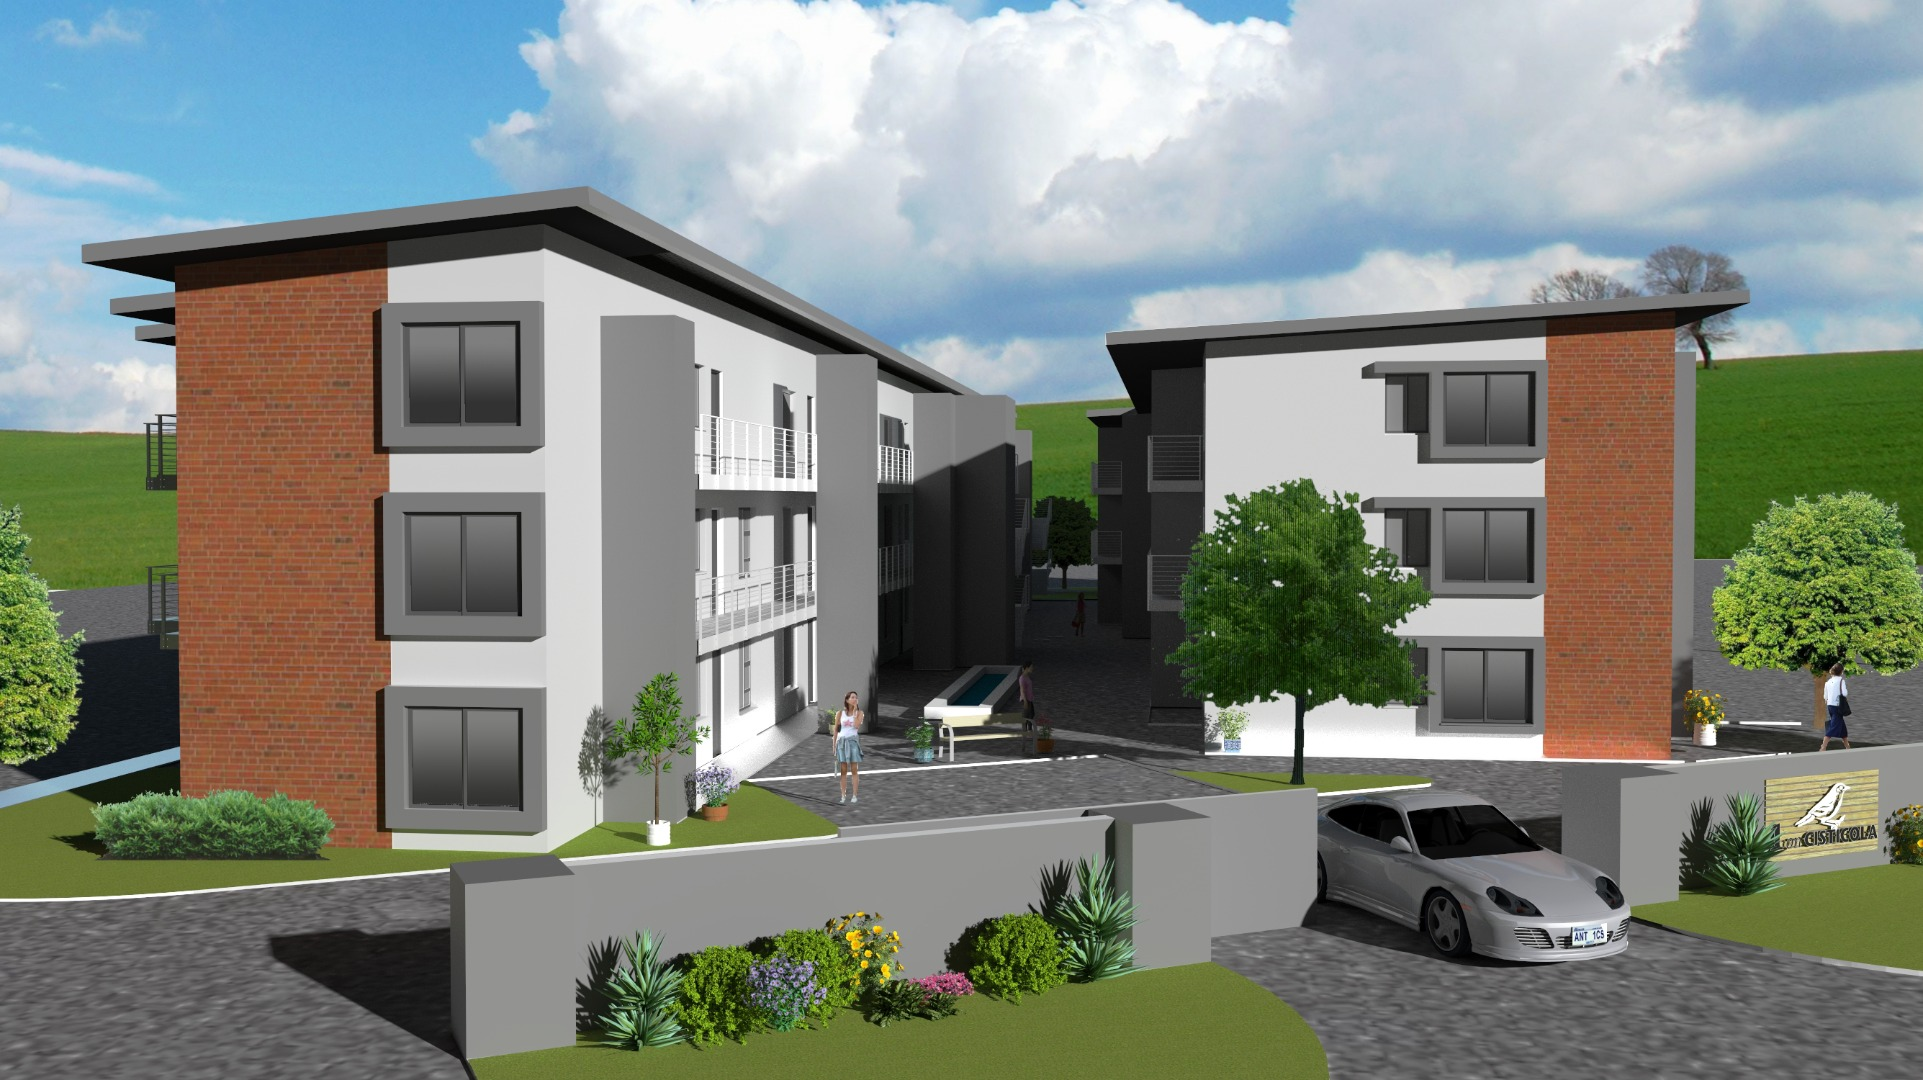 2 Bedroom Apartment / Flat For Sale in Sedgefield Central